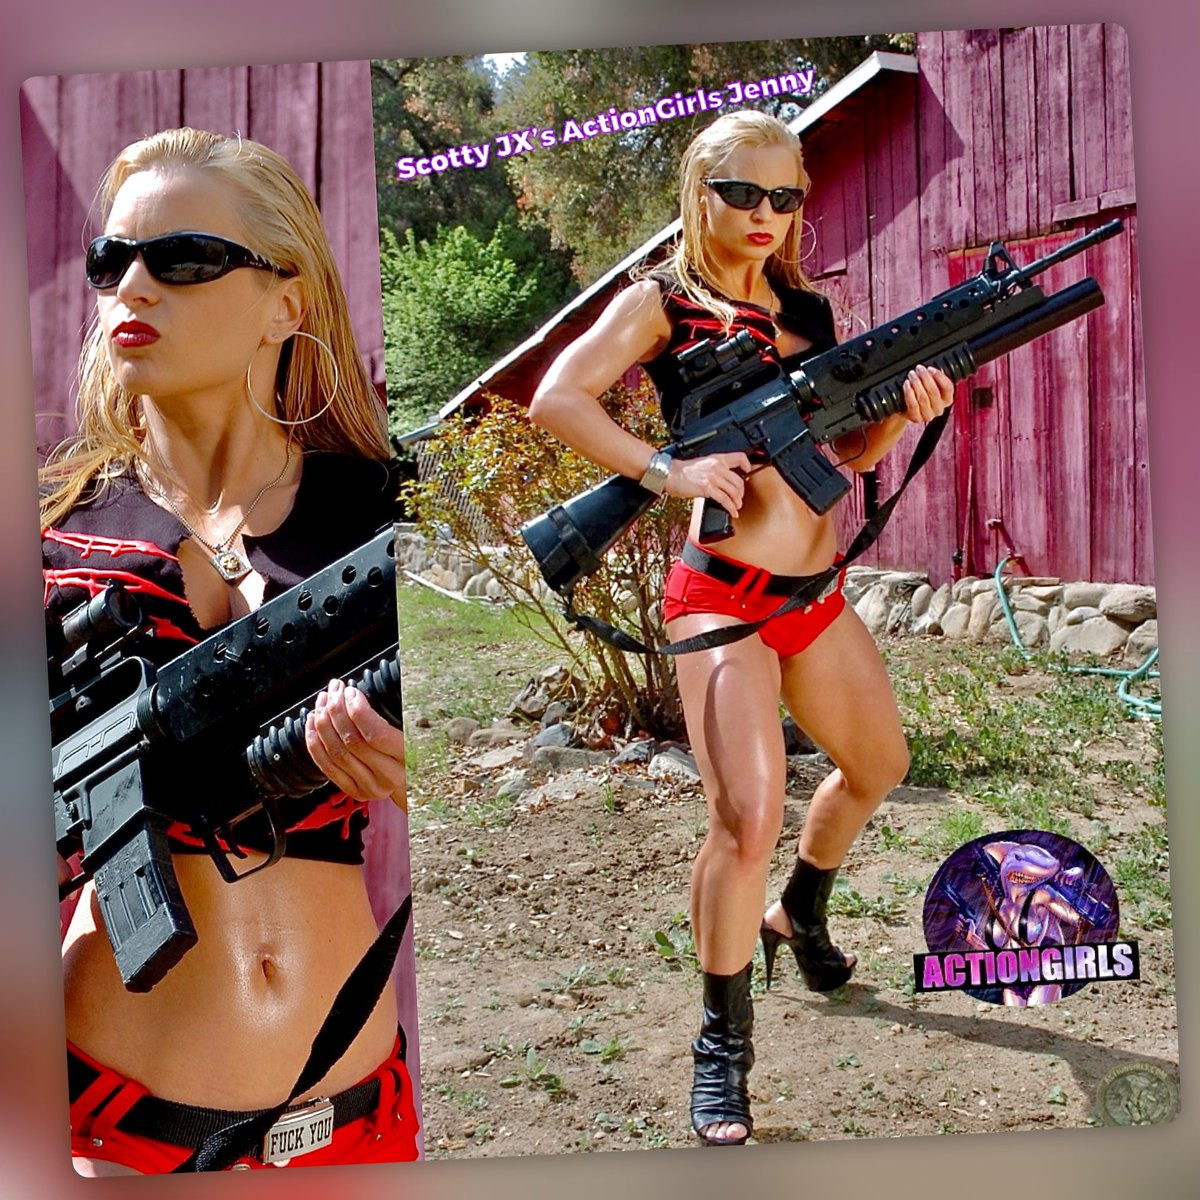 Scotty JX's ActionGirls Shark 🦈 Jenny Character. @ScottyJX Stand aside or become, Van Damaged, SJX AG Shark Jenny Character the Poussin Machine played by @realjennypoussin with 🇺🇸 🇨🇦 🇫🇷 🩸 SJX AG Jenny… #sjxagjenny #scottyjx #actiongirls read more 🔽